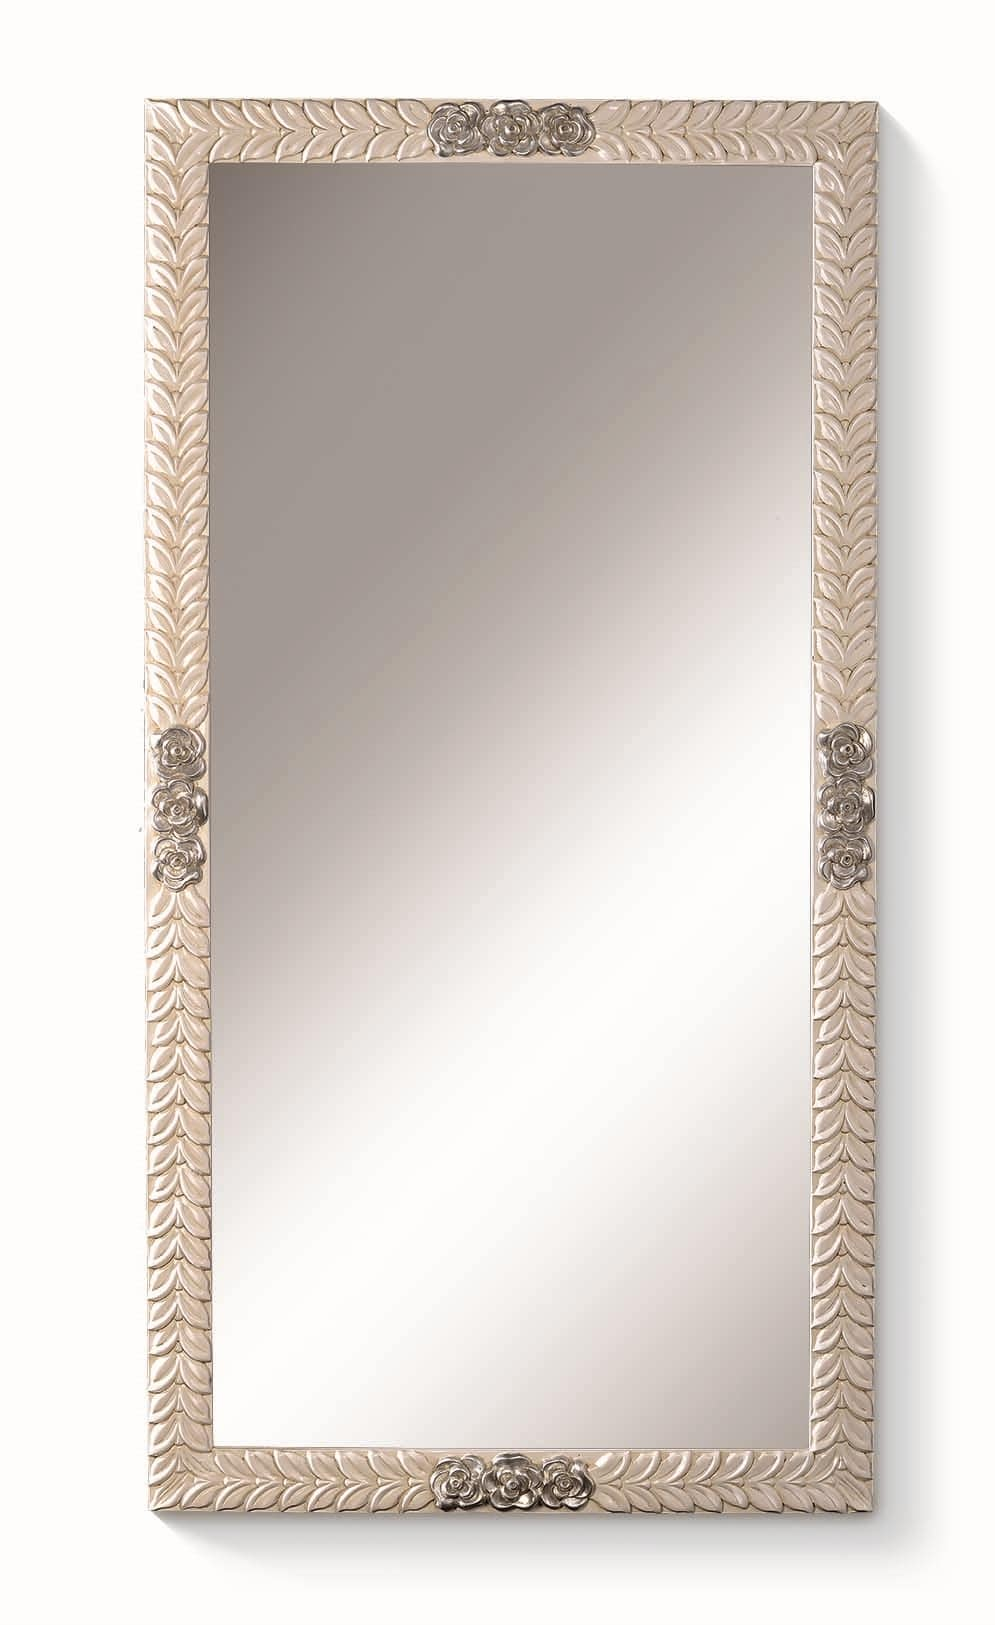 Art. 772, Rectangular mirror, with flowers and leaves on frame